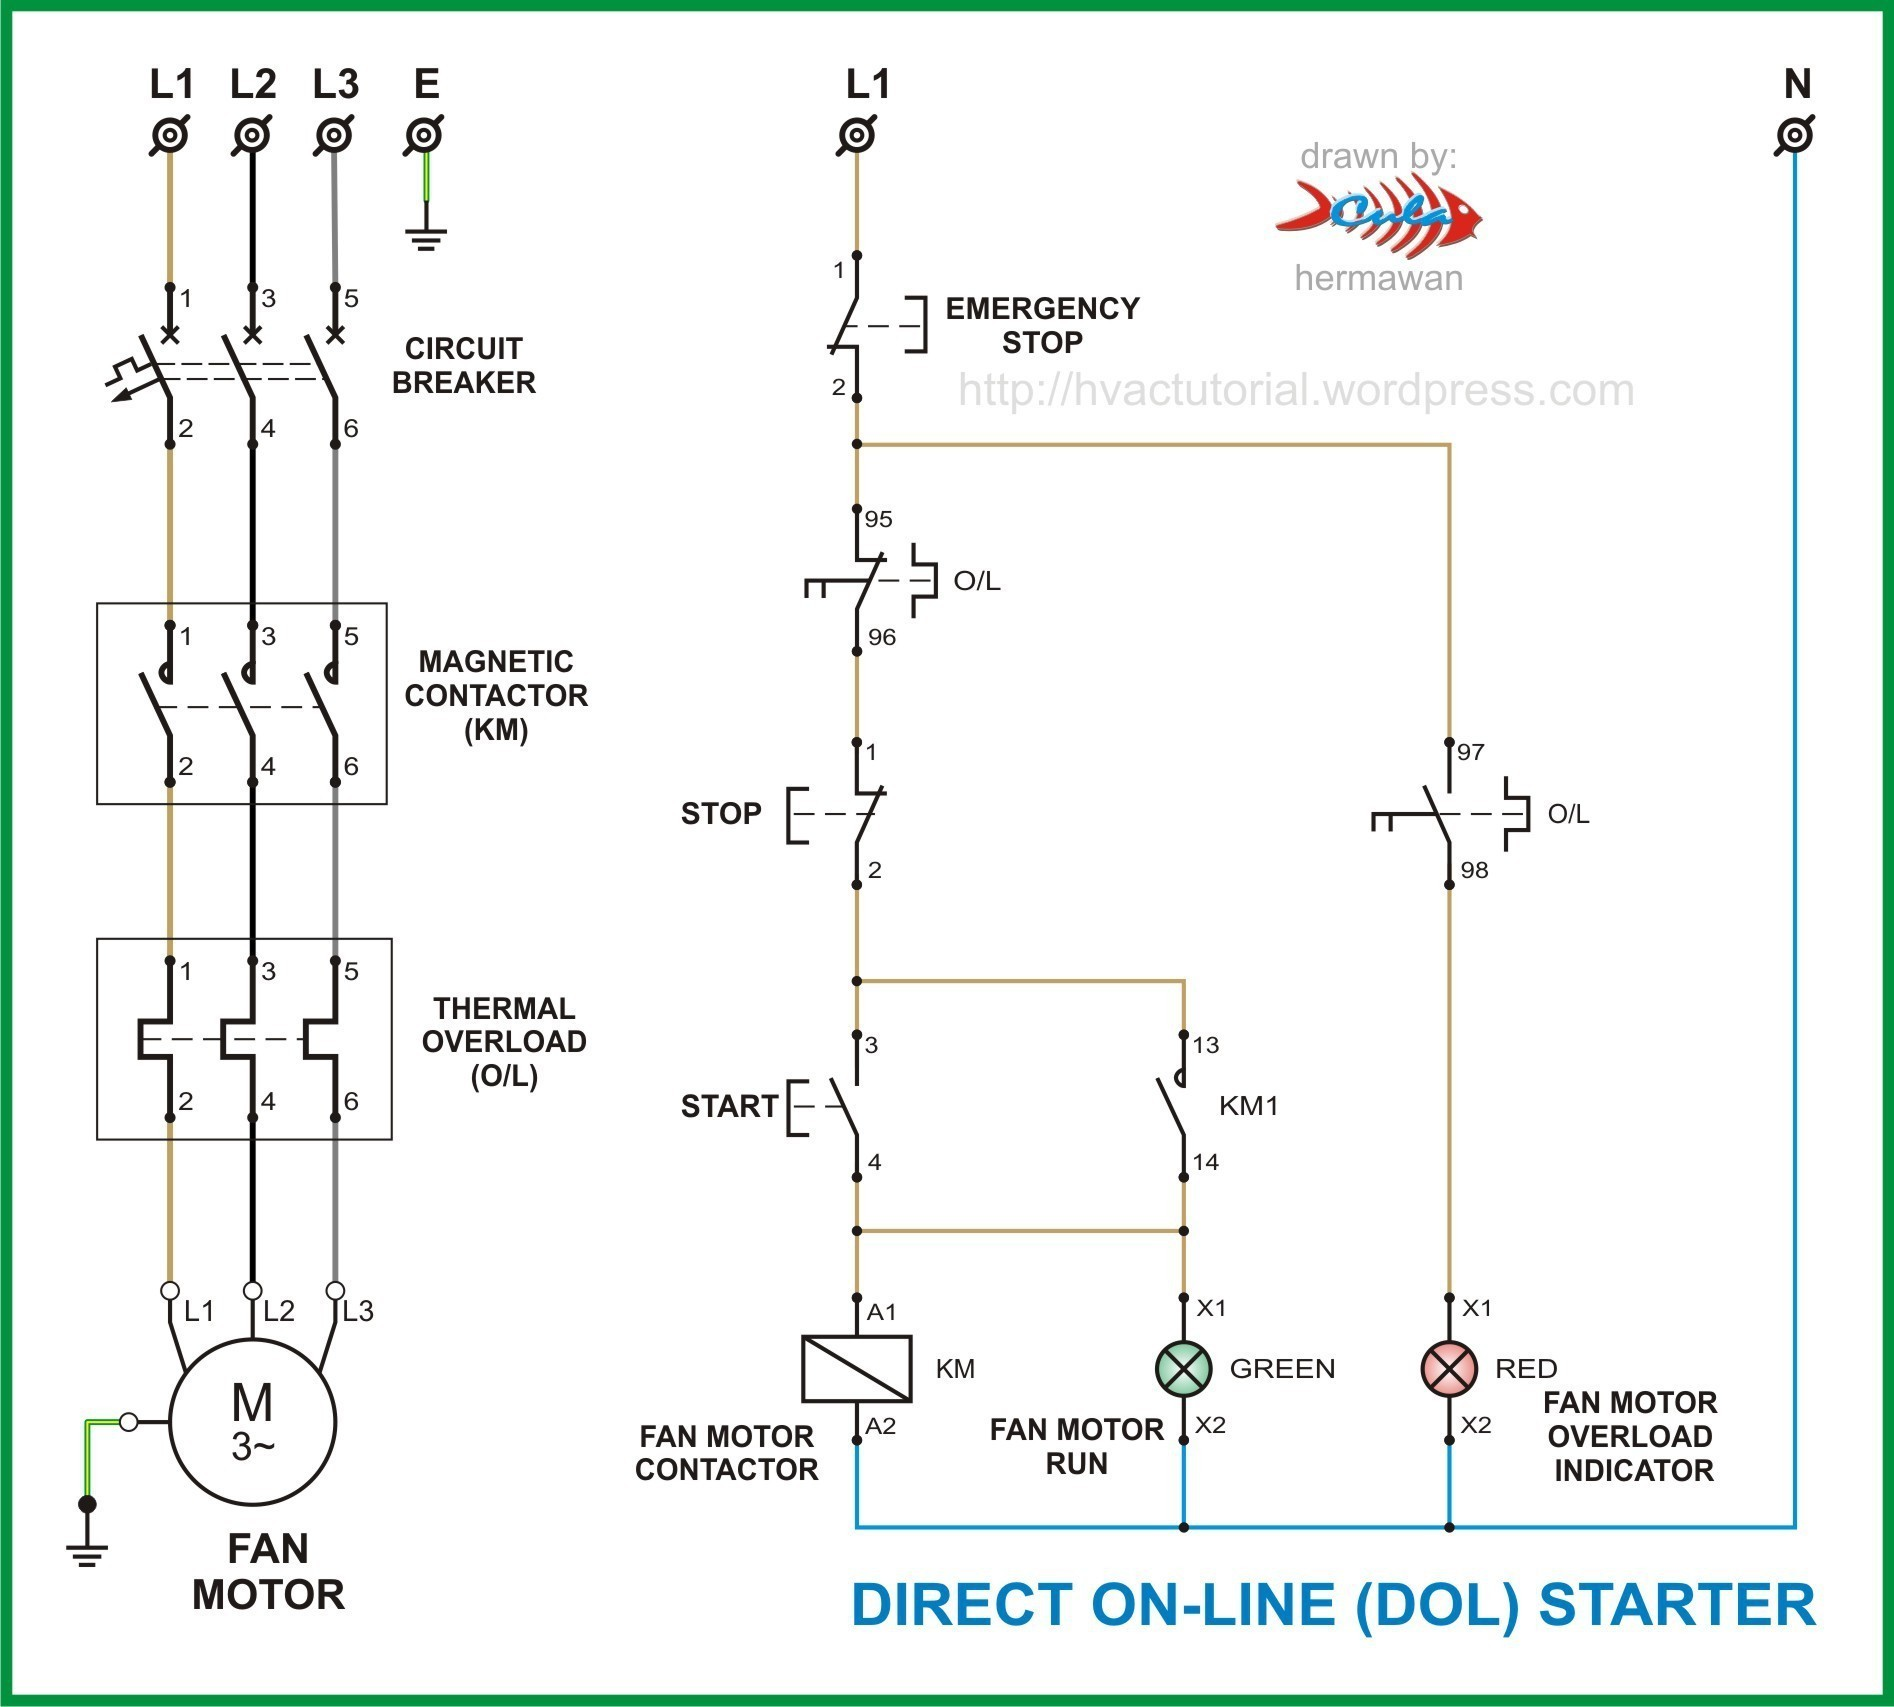 Square D Magnetic Starter Wiring Diagram | My Wiring DIagram on